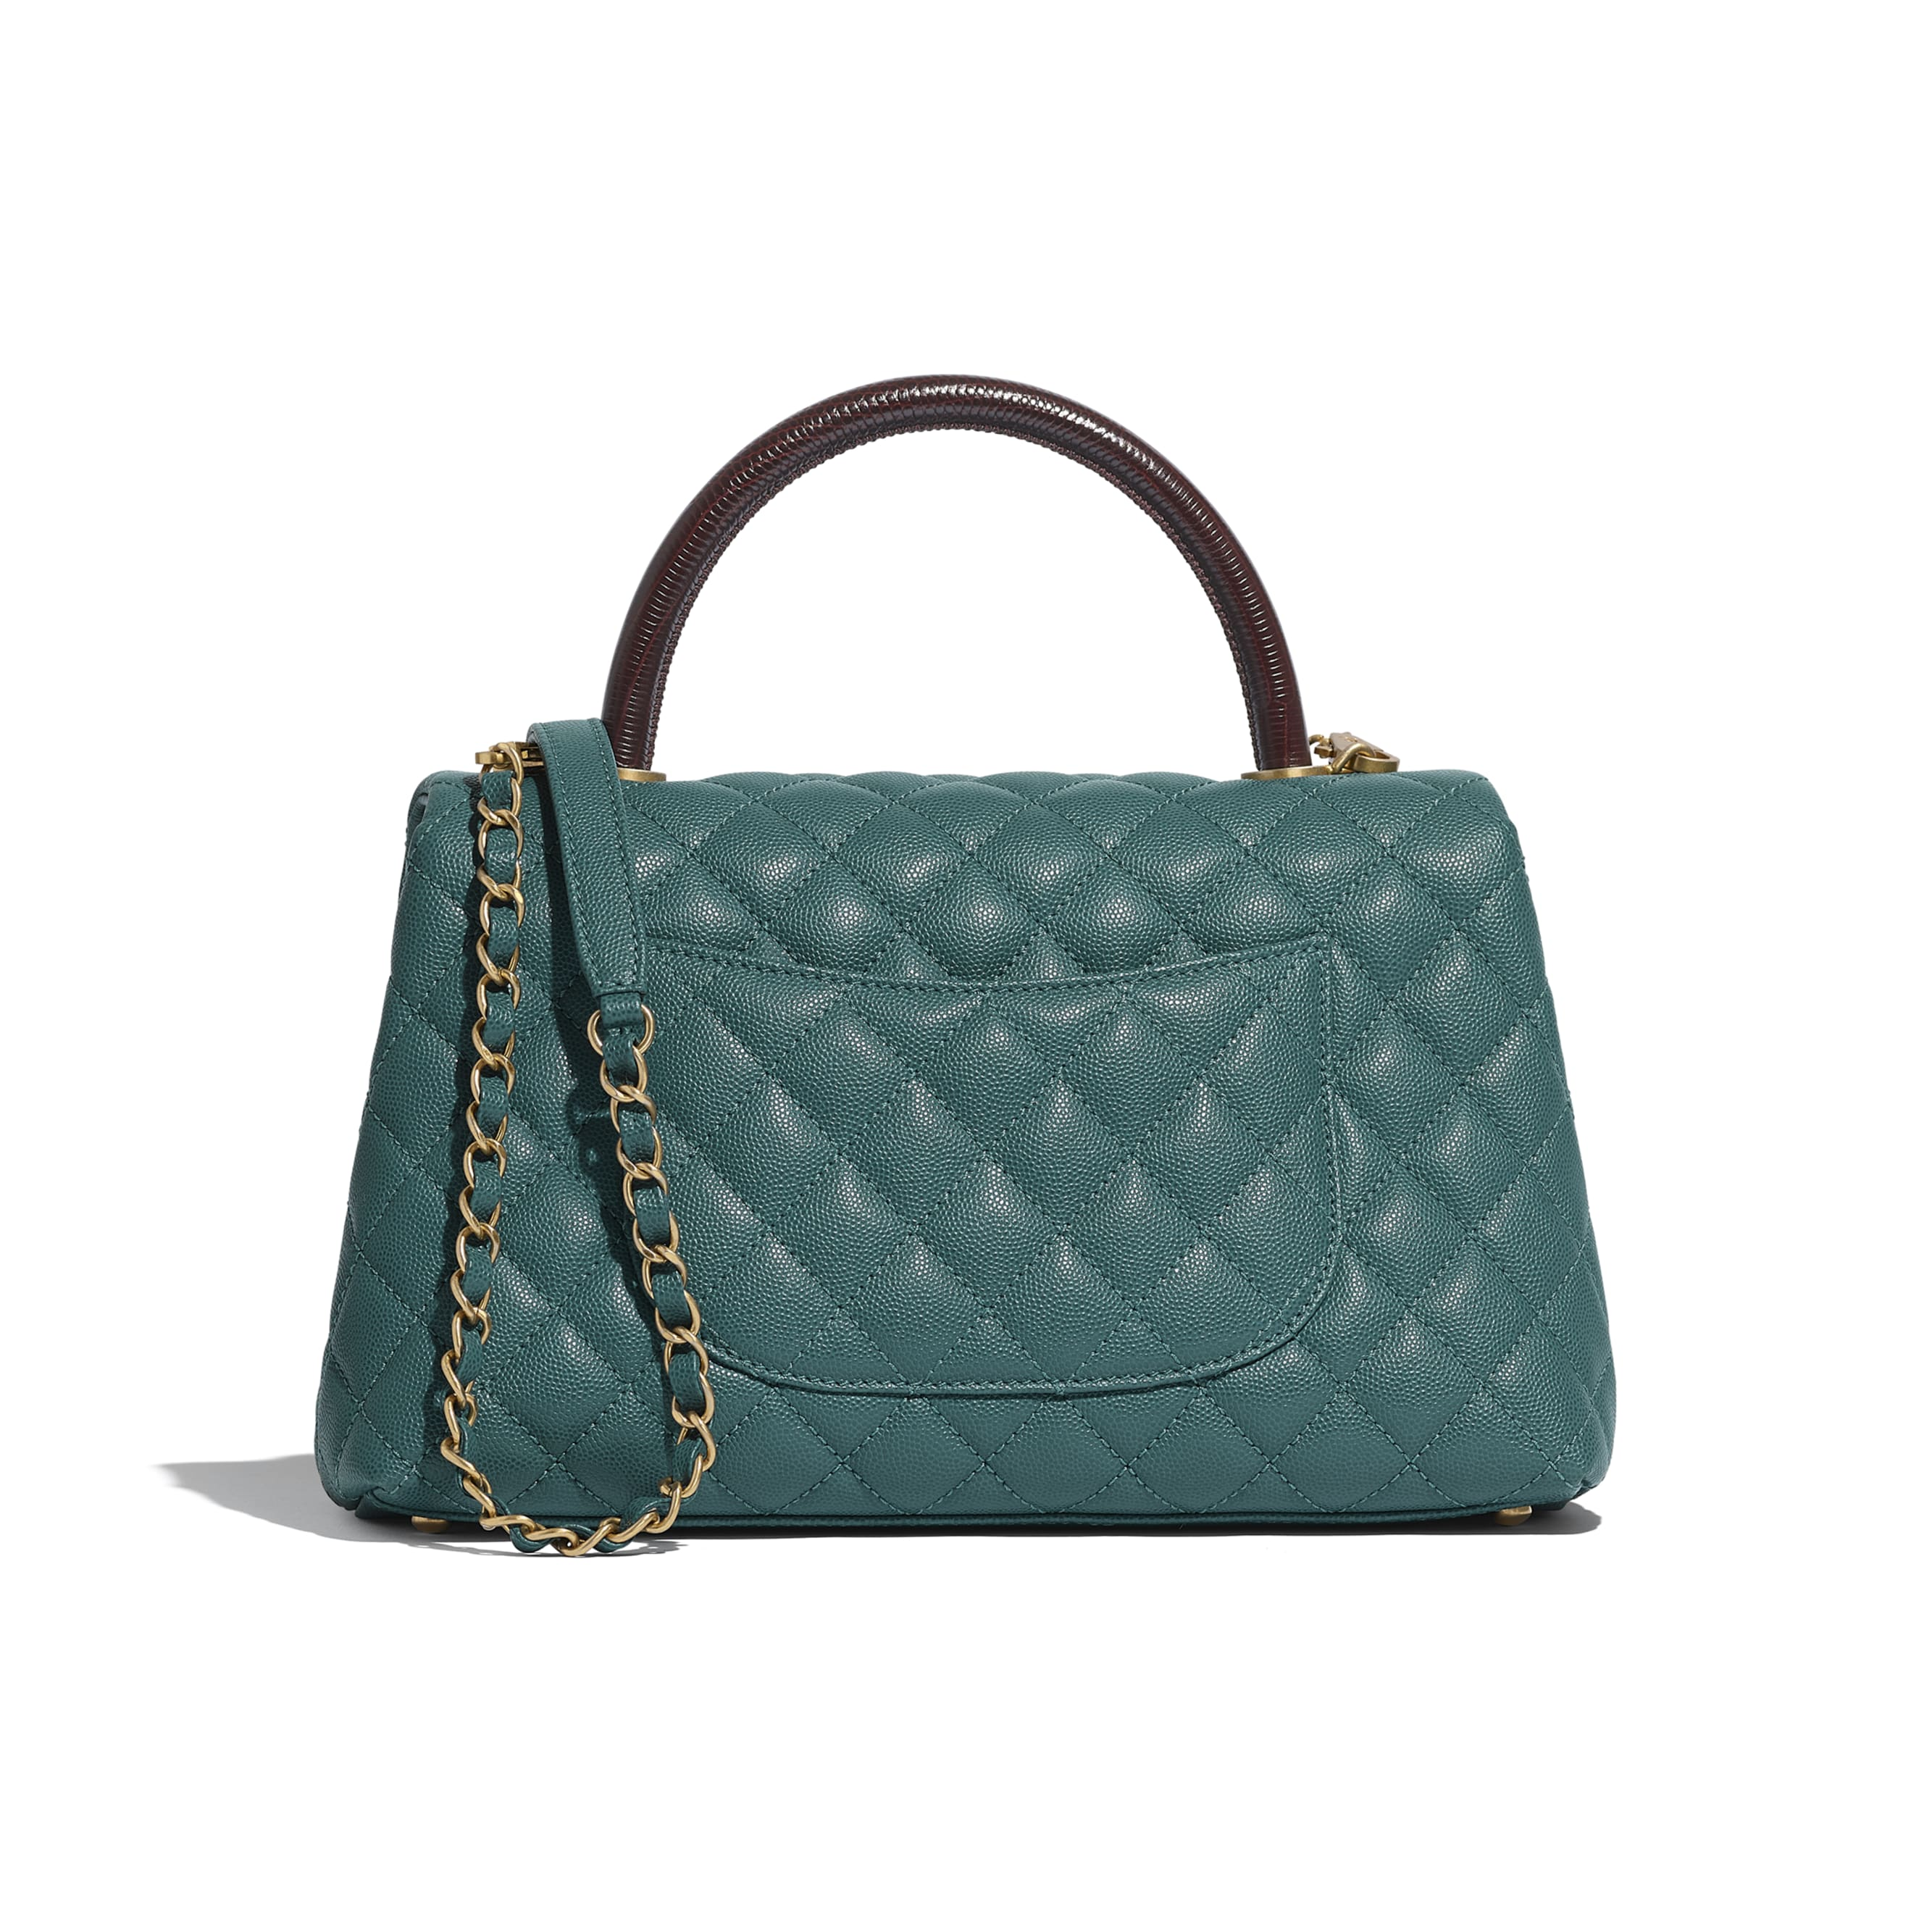 Flap Bag with Top Handle - Turquoise & Burgundy - Grained Calfskin, Lizard Embossed Calfskin & Gold-Tone Metal - Alternative view - see standard sized version